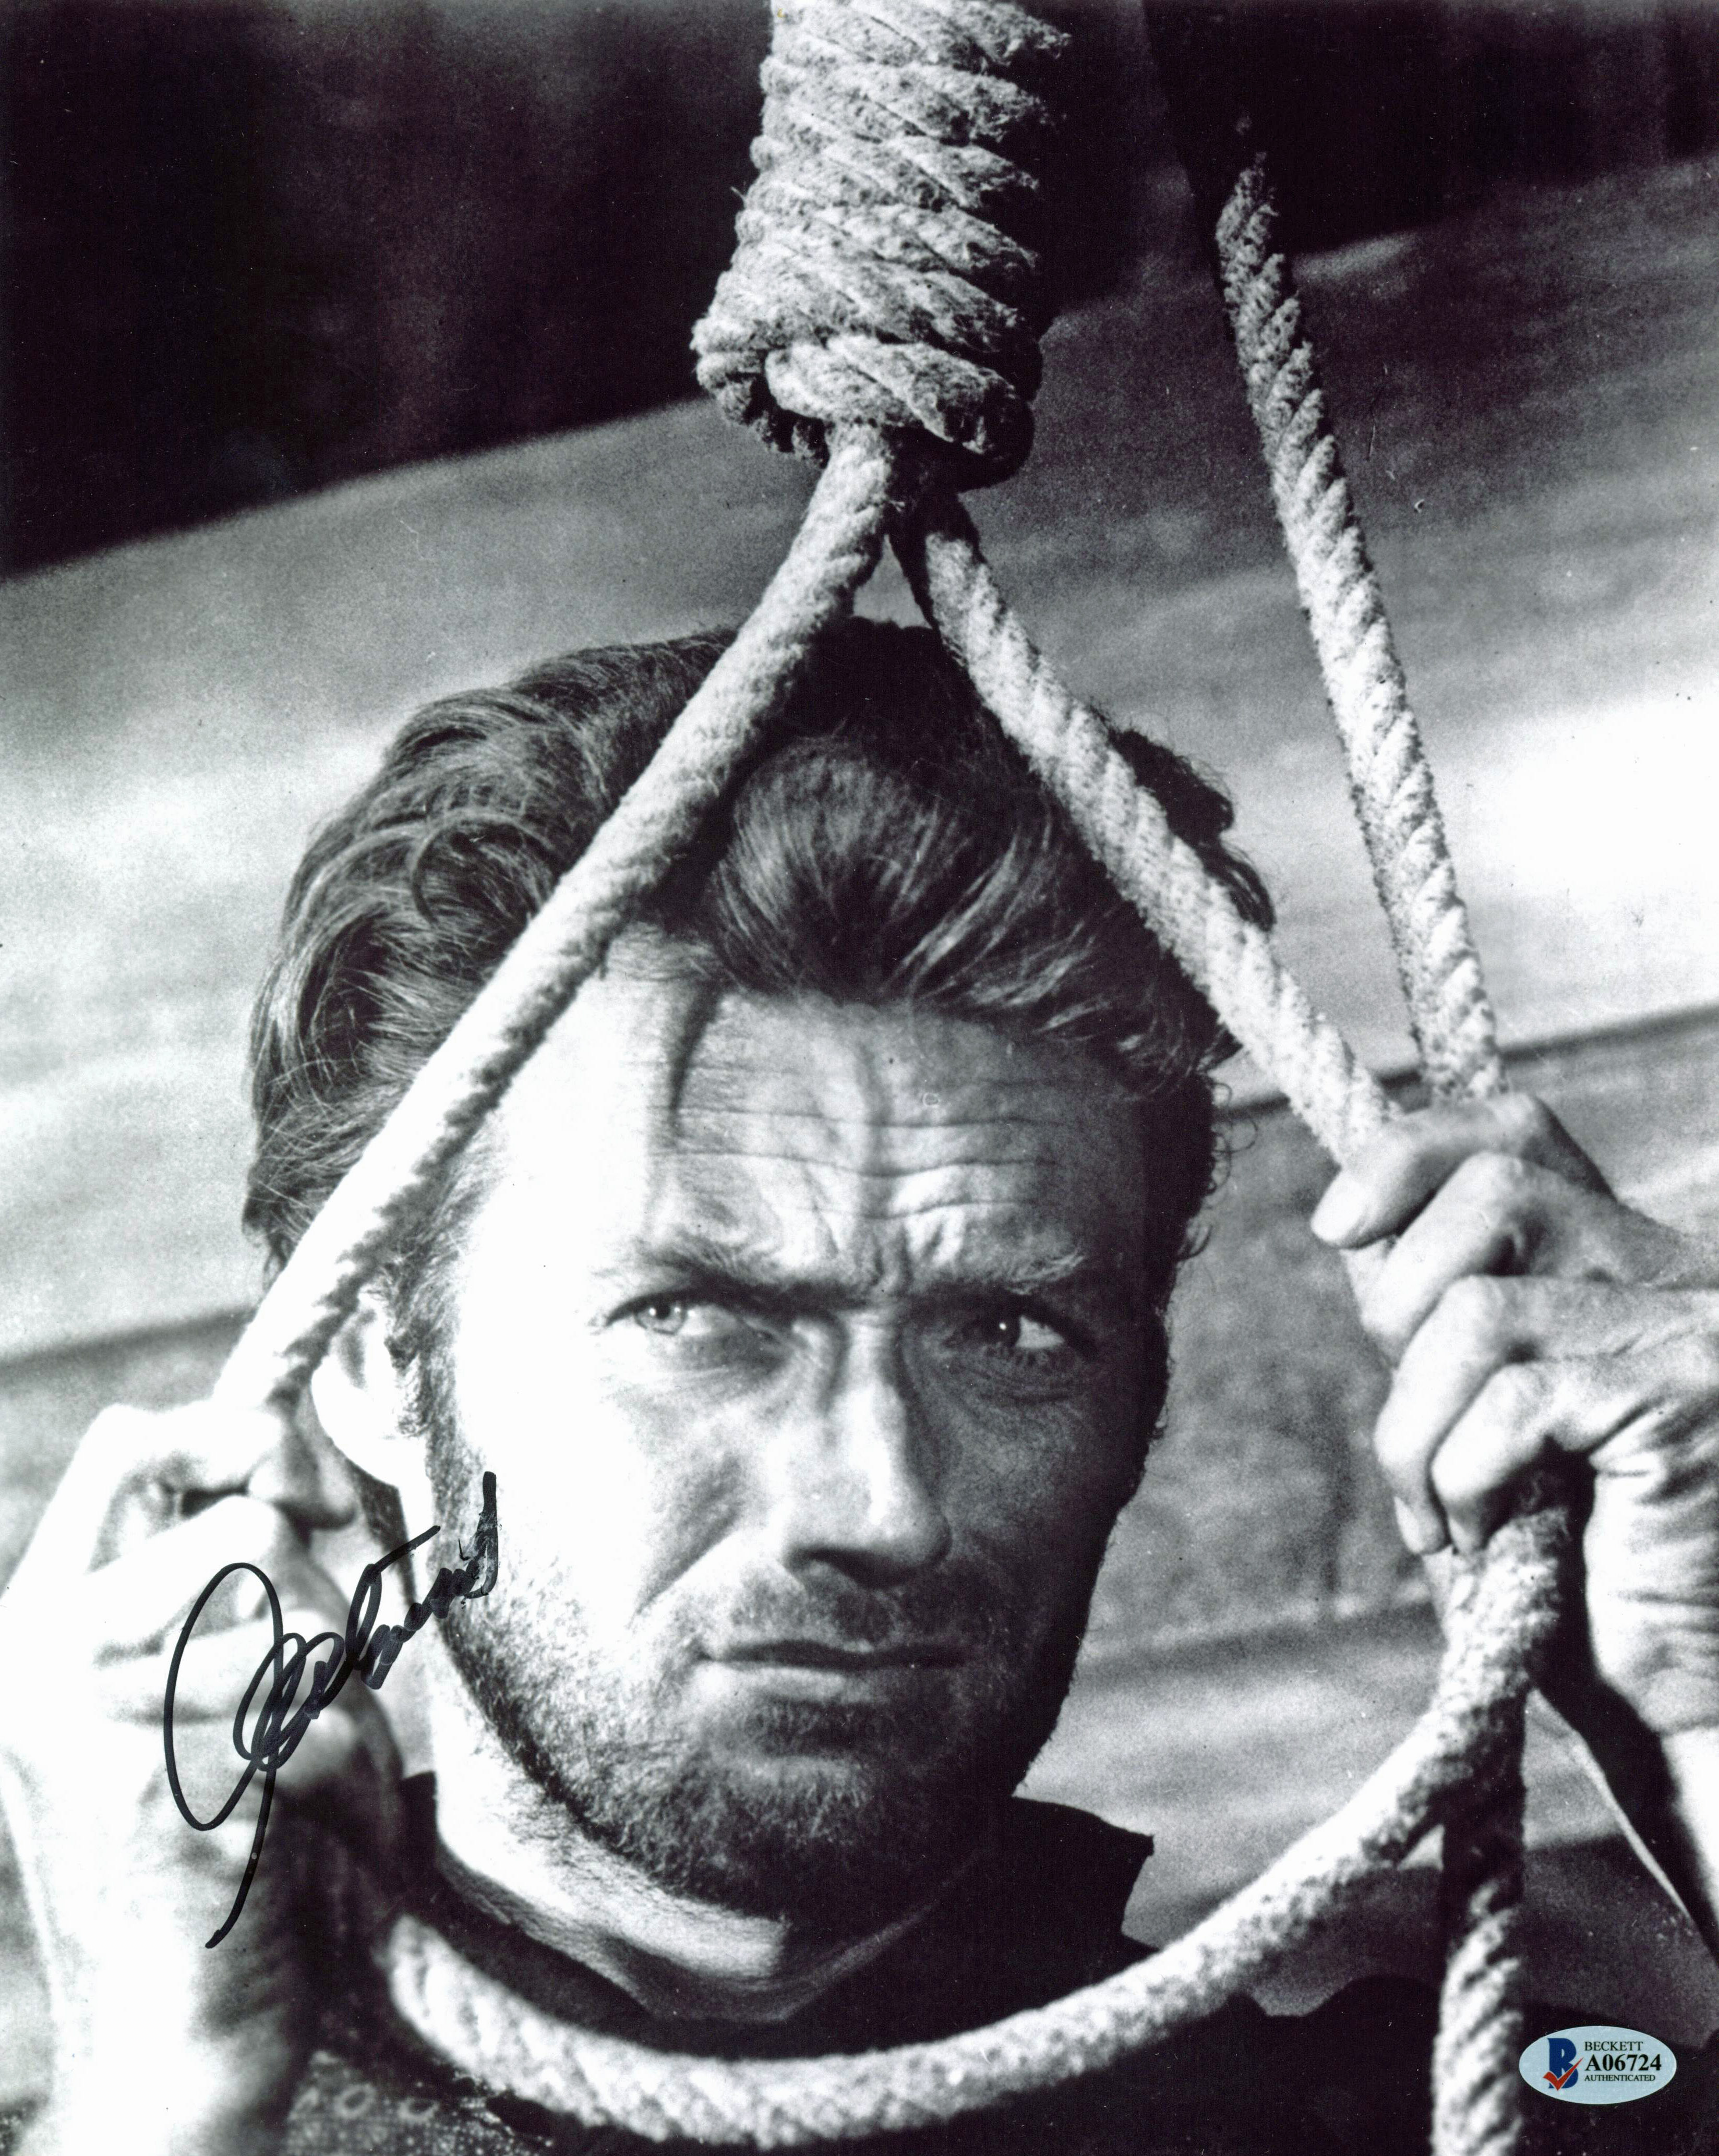 Clint Eastwood The Good, the Bad and the Ugly Signed 11X14 Photo BAS #A06724